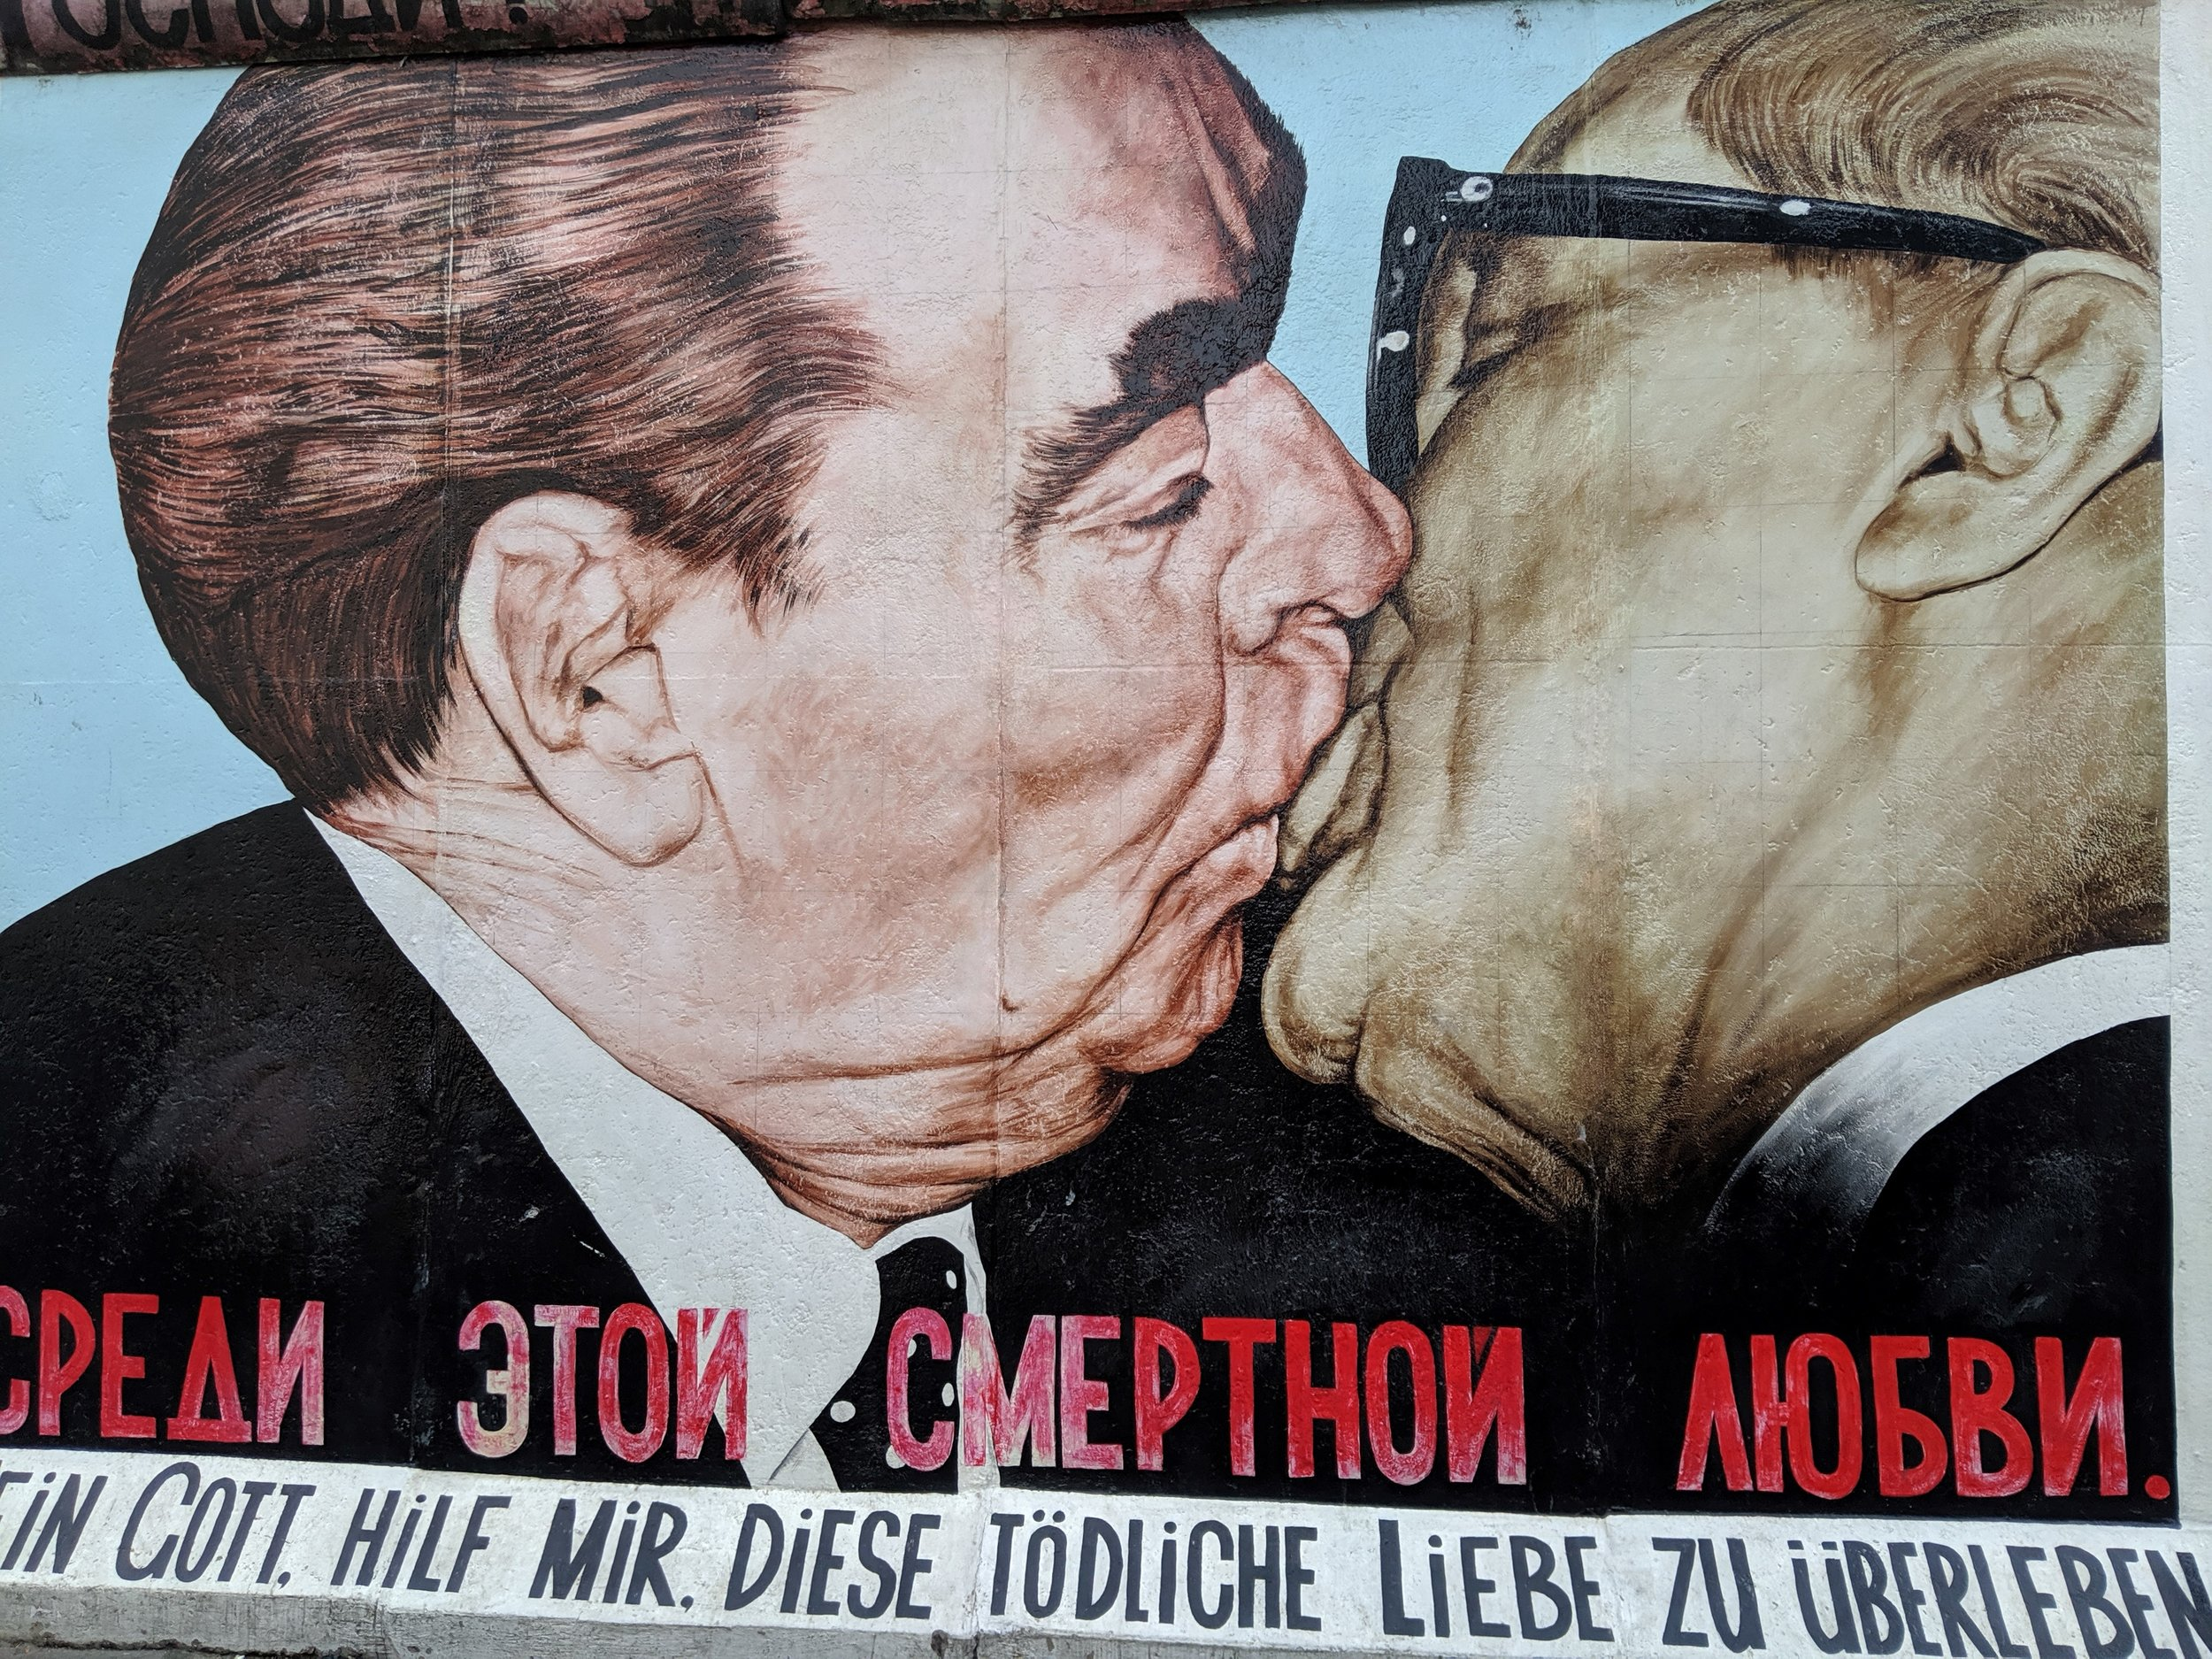 I think his mural depicts the mayors of East and West Berlin after the wall was torn down.